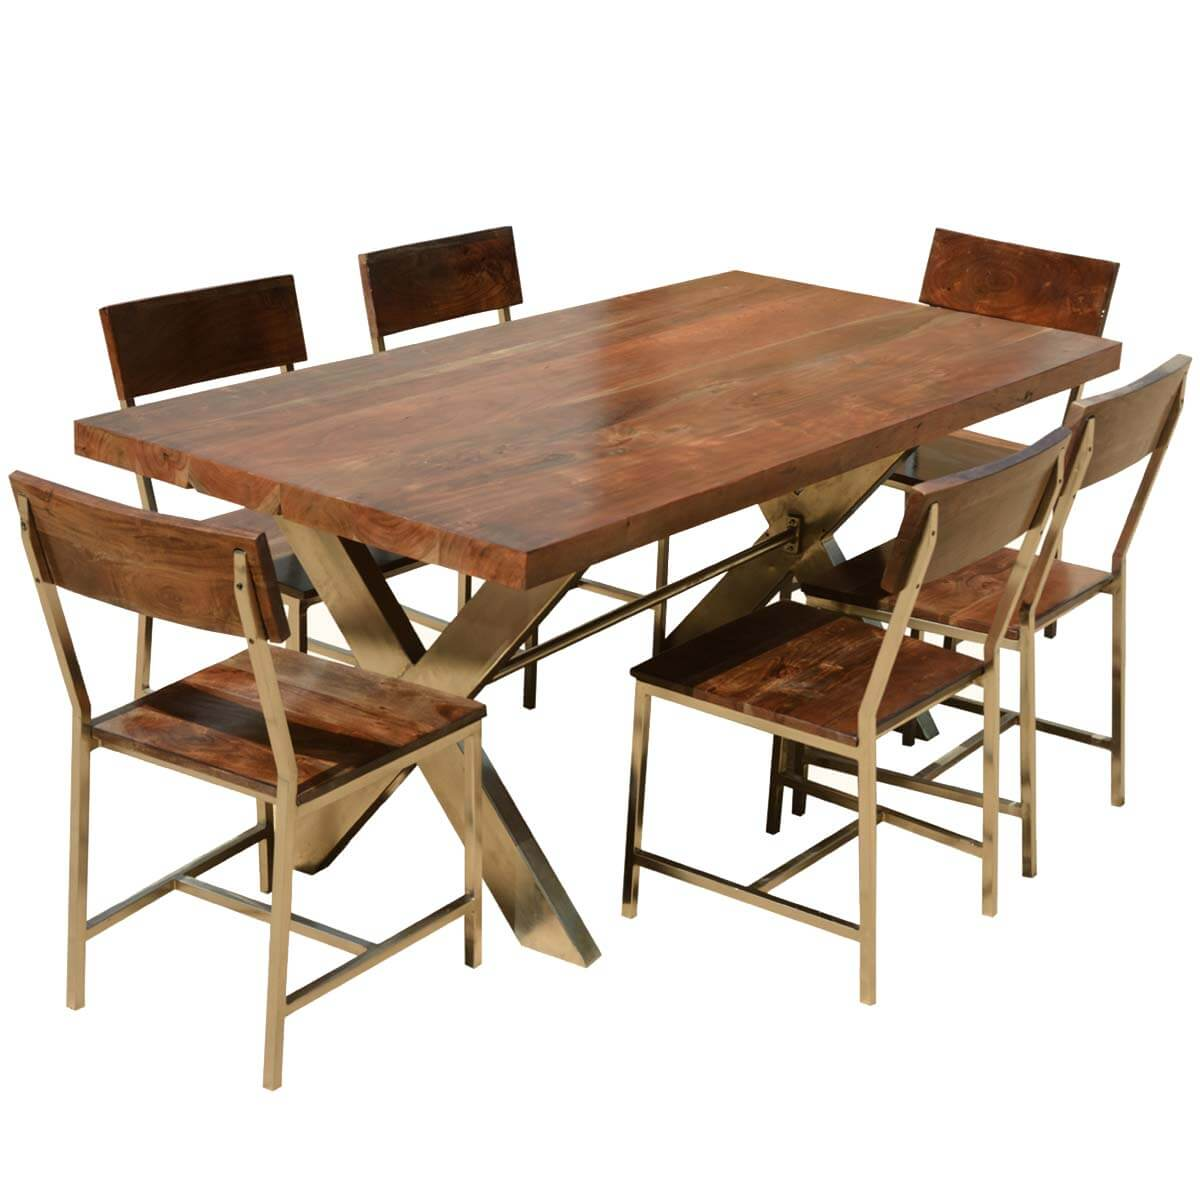 Rustic Wooden Dining Tables ~ Solid wood iron double pedestal rustic dining